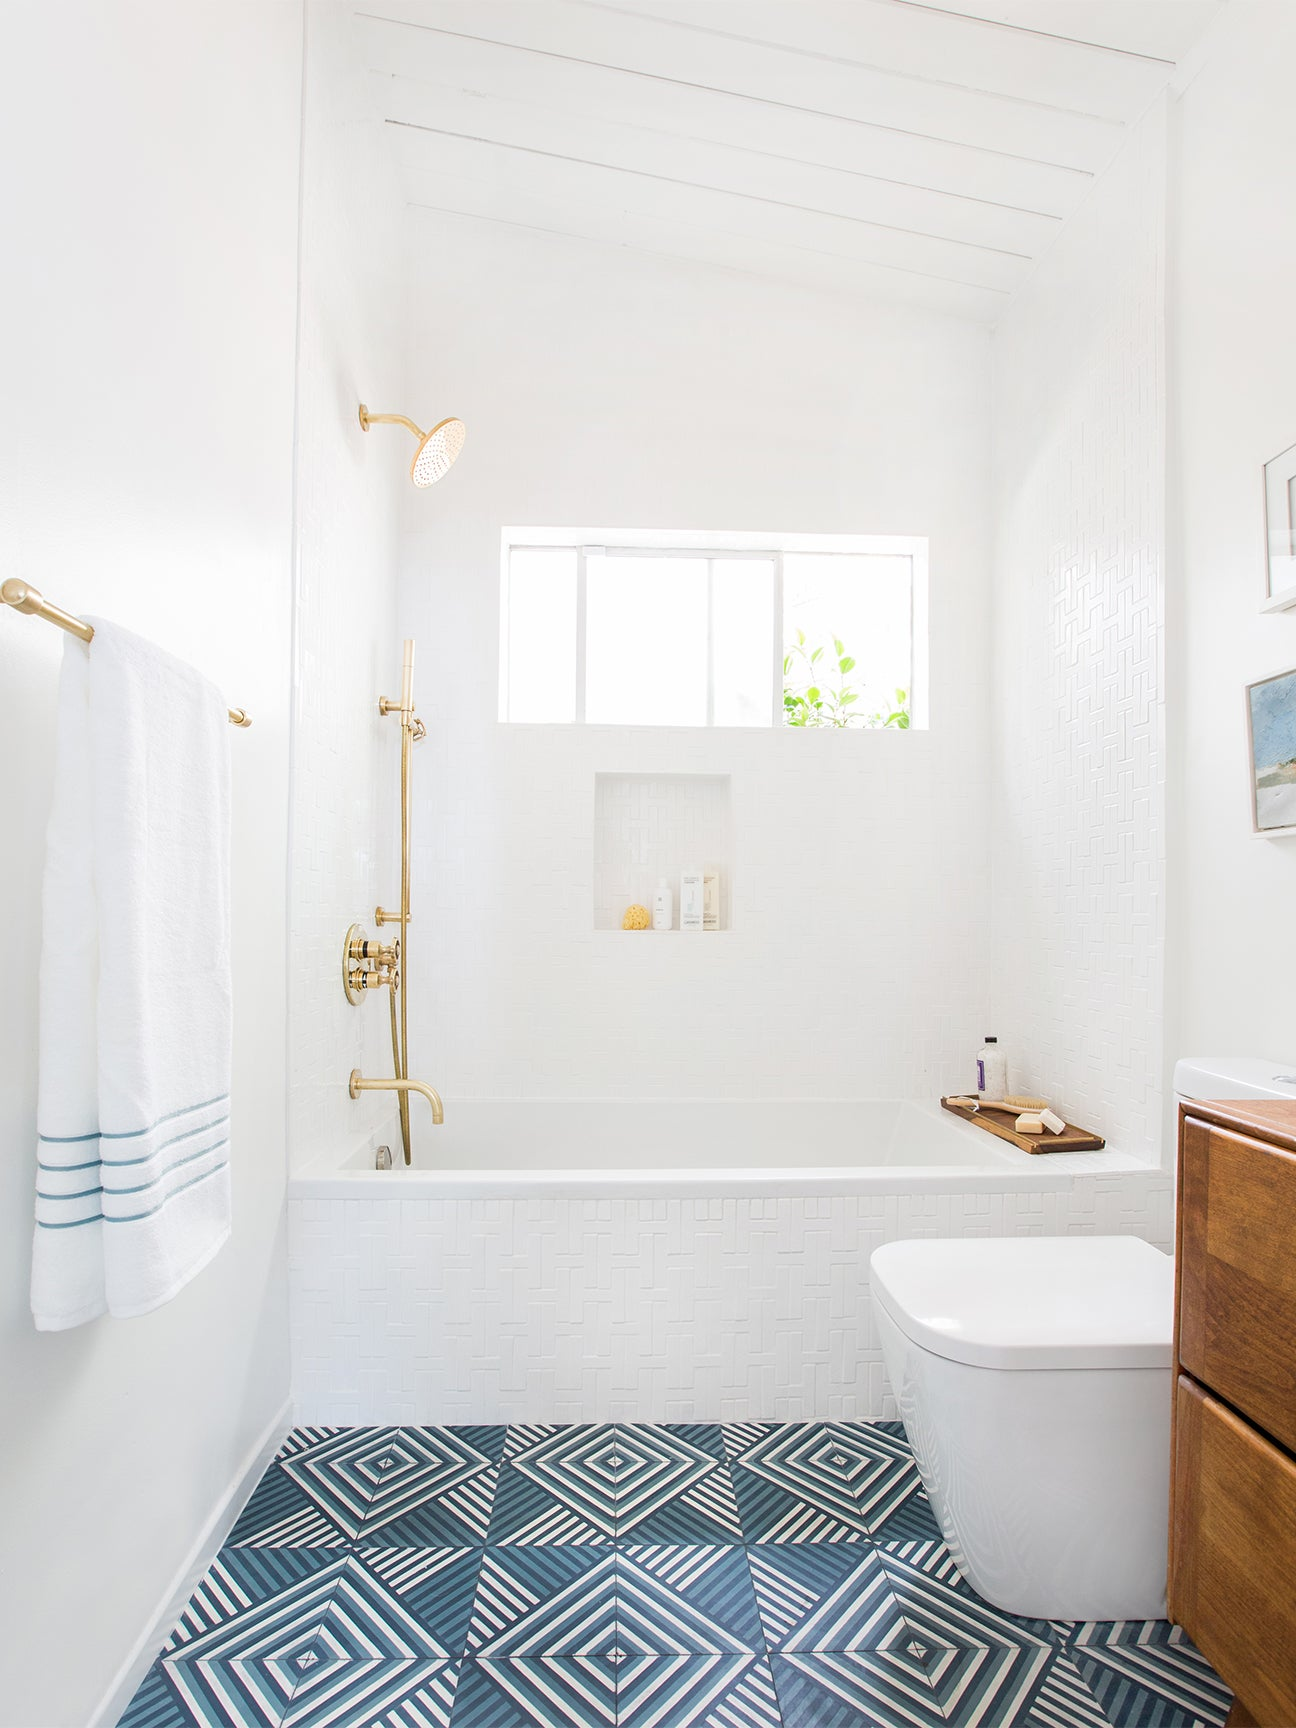 8 Things Your Bathroom Doesn't Really Need (and What to Replace Them With)